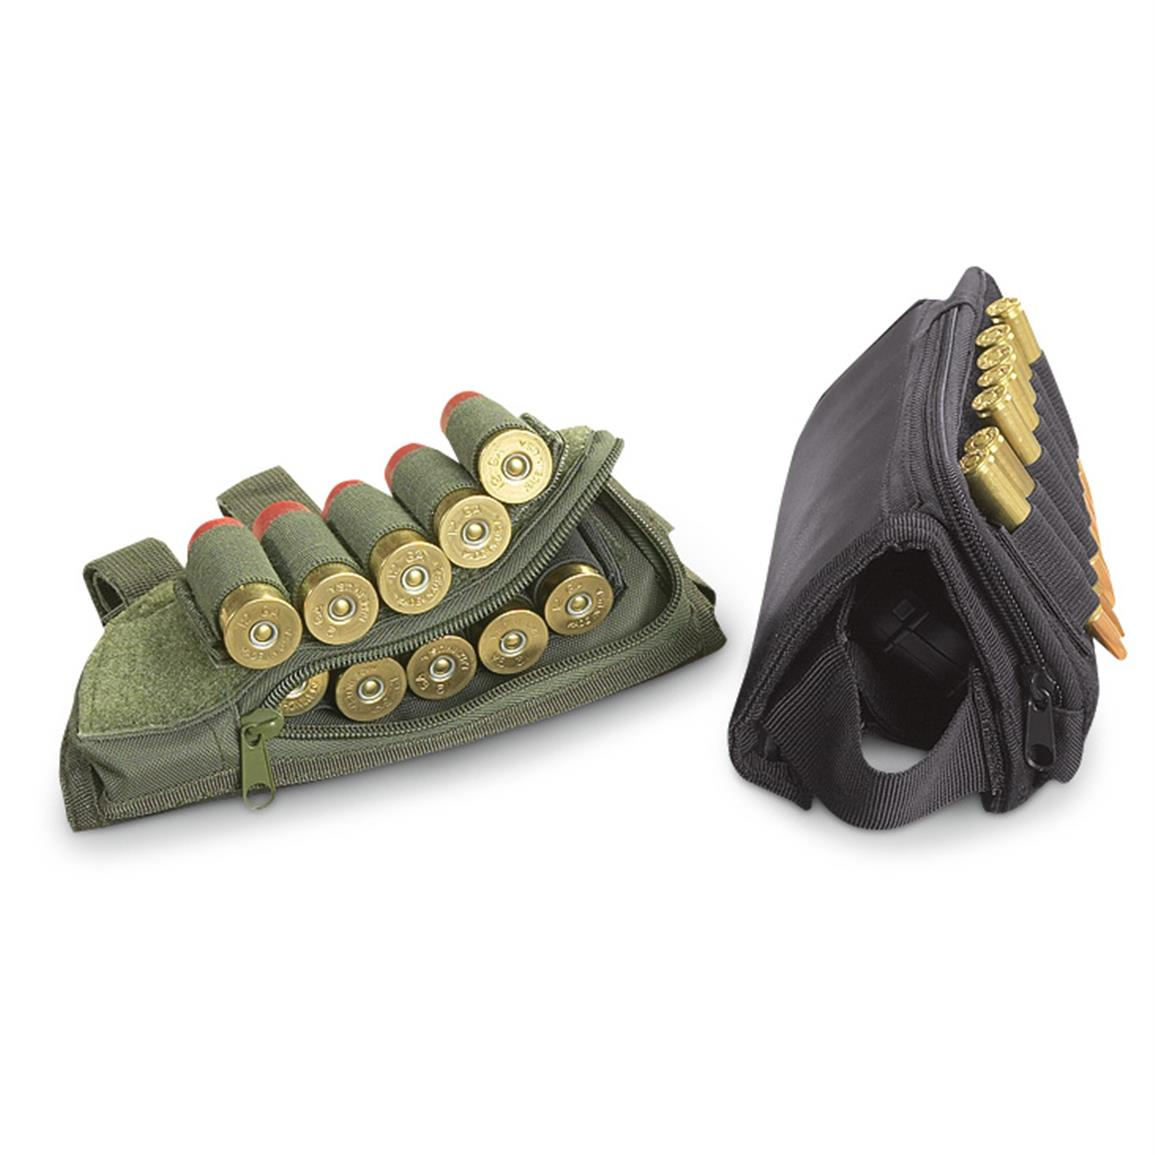 Fox Tactical Butt Stock Cheek Rest, Olive Drab or Black